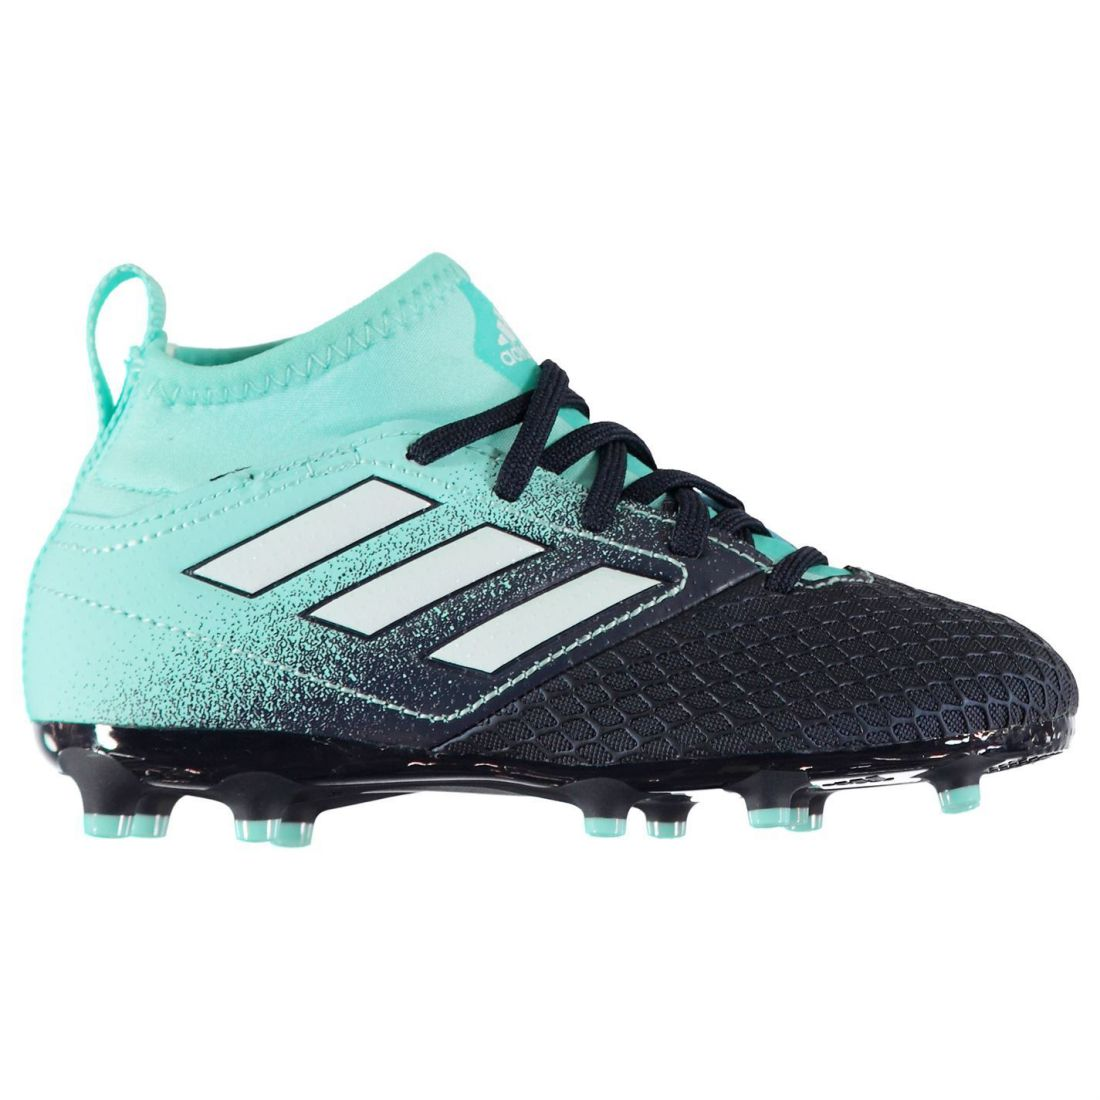 8914313ce adidas Ace 17.3 Primemesh FG Childrens Football Boots Firm Ground ...